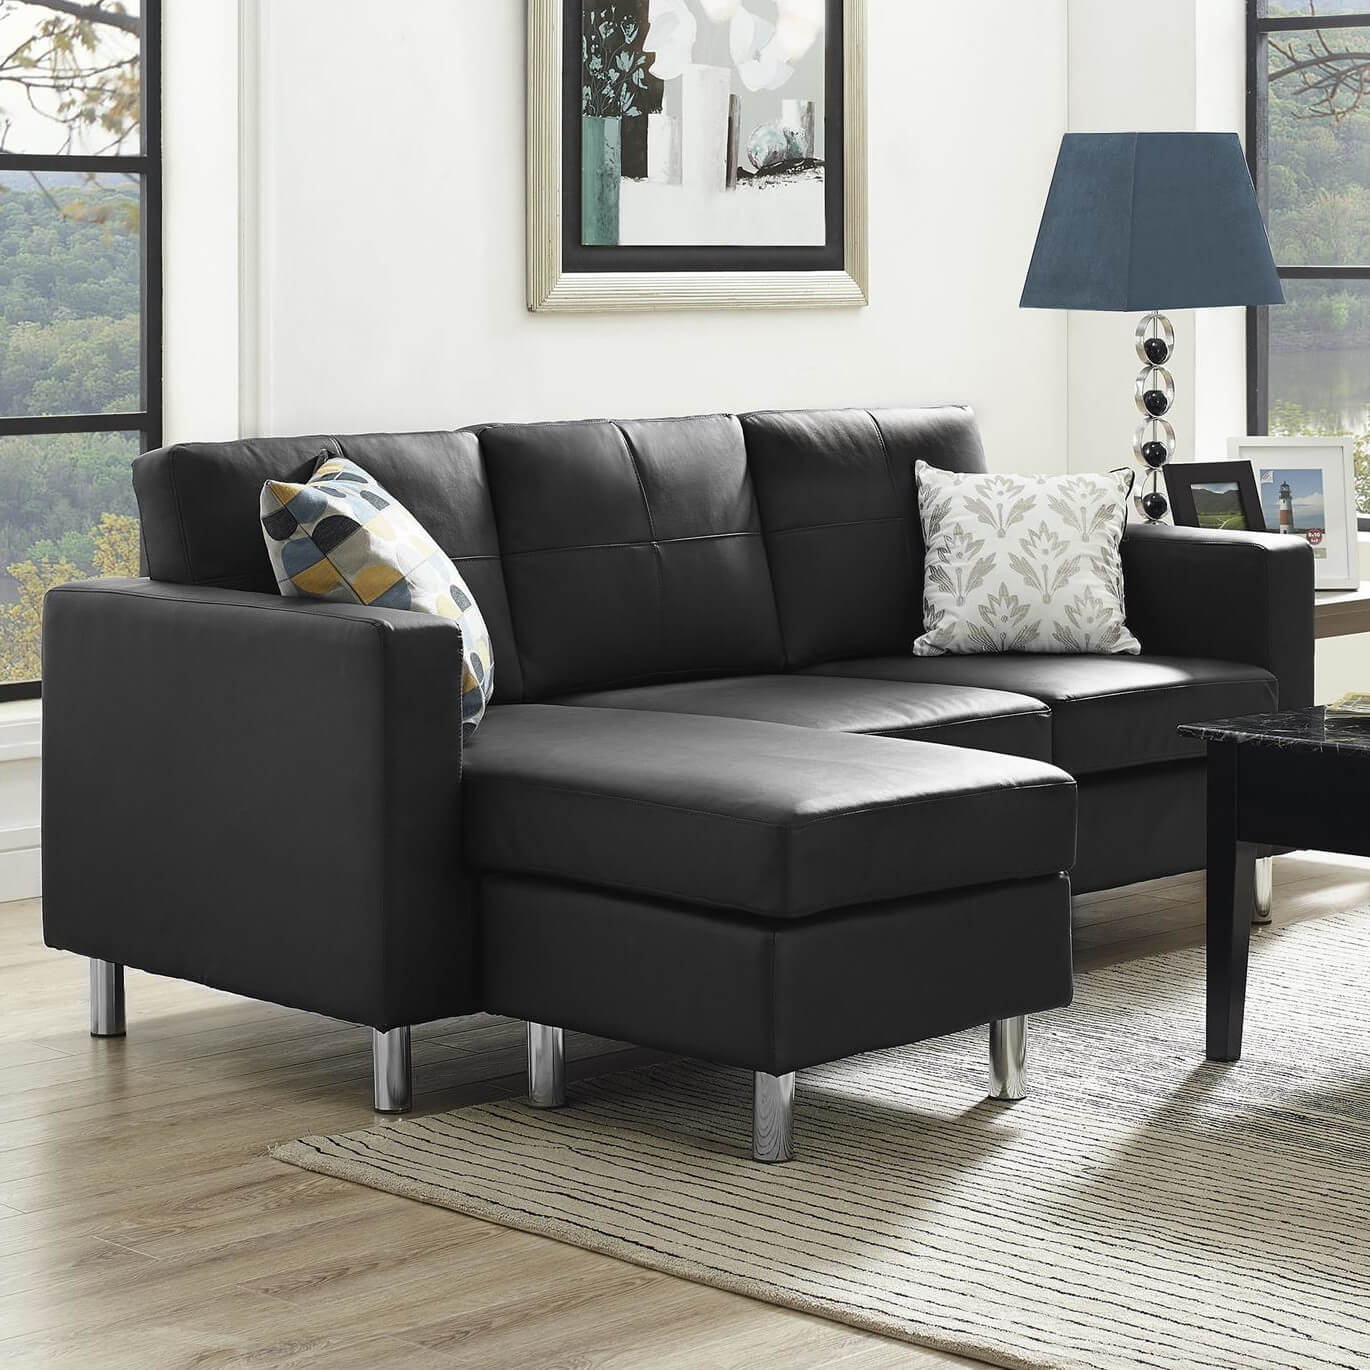 13 Cheap Sectional Sofas Under 500 For 2019